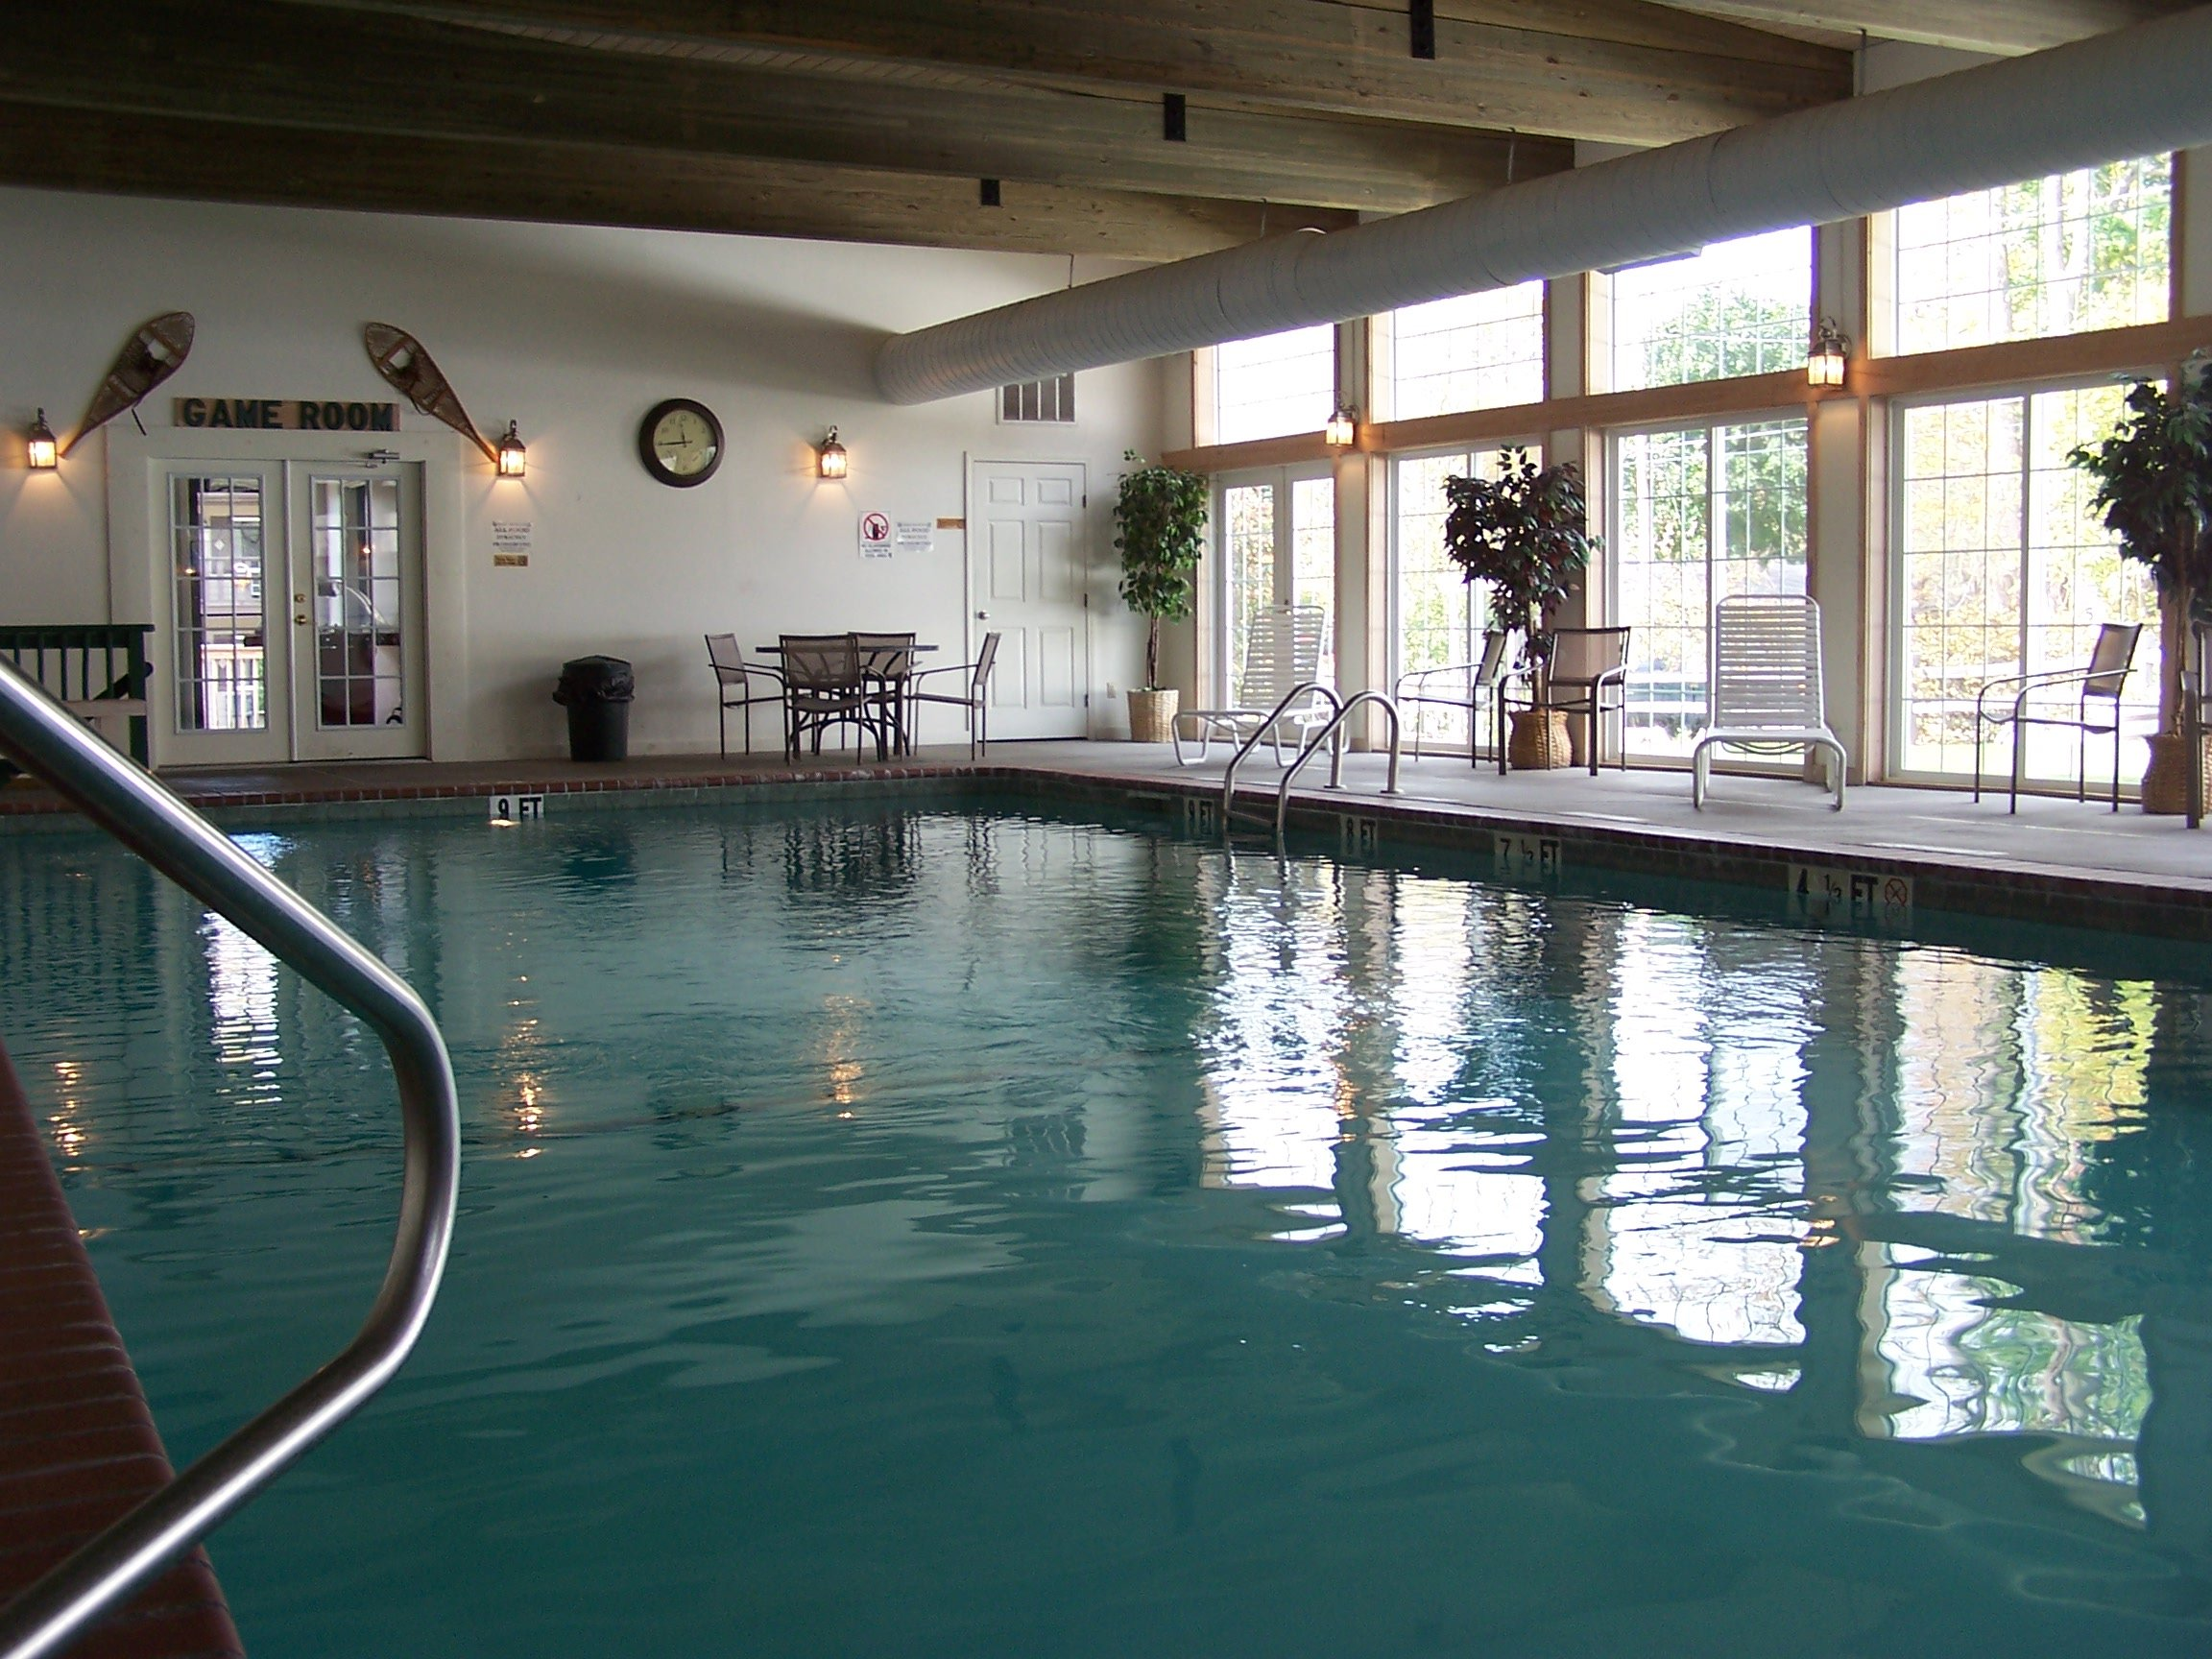 Swim year round in our beautiful indoor pool